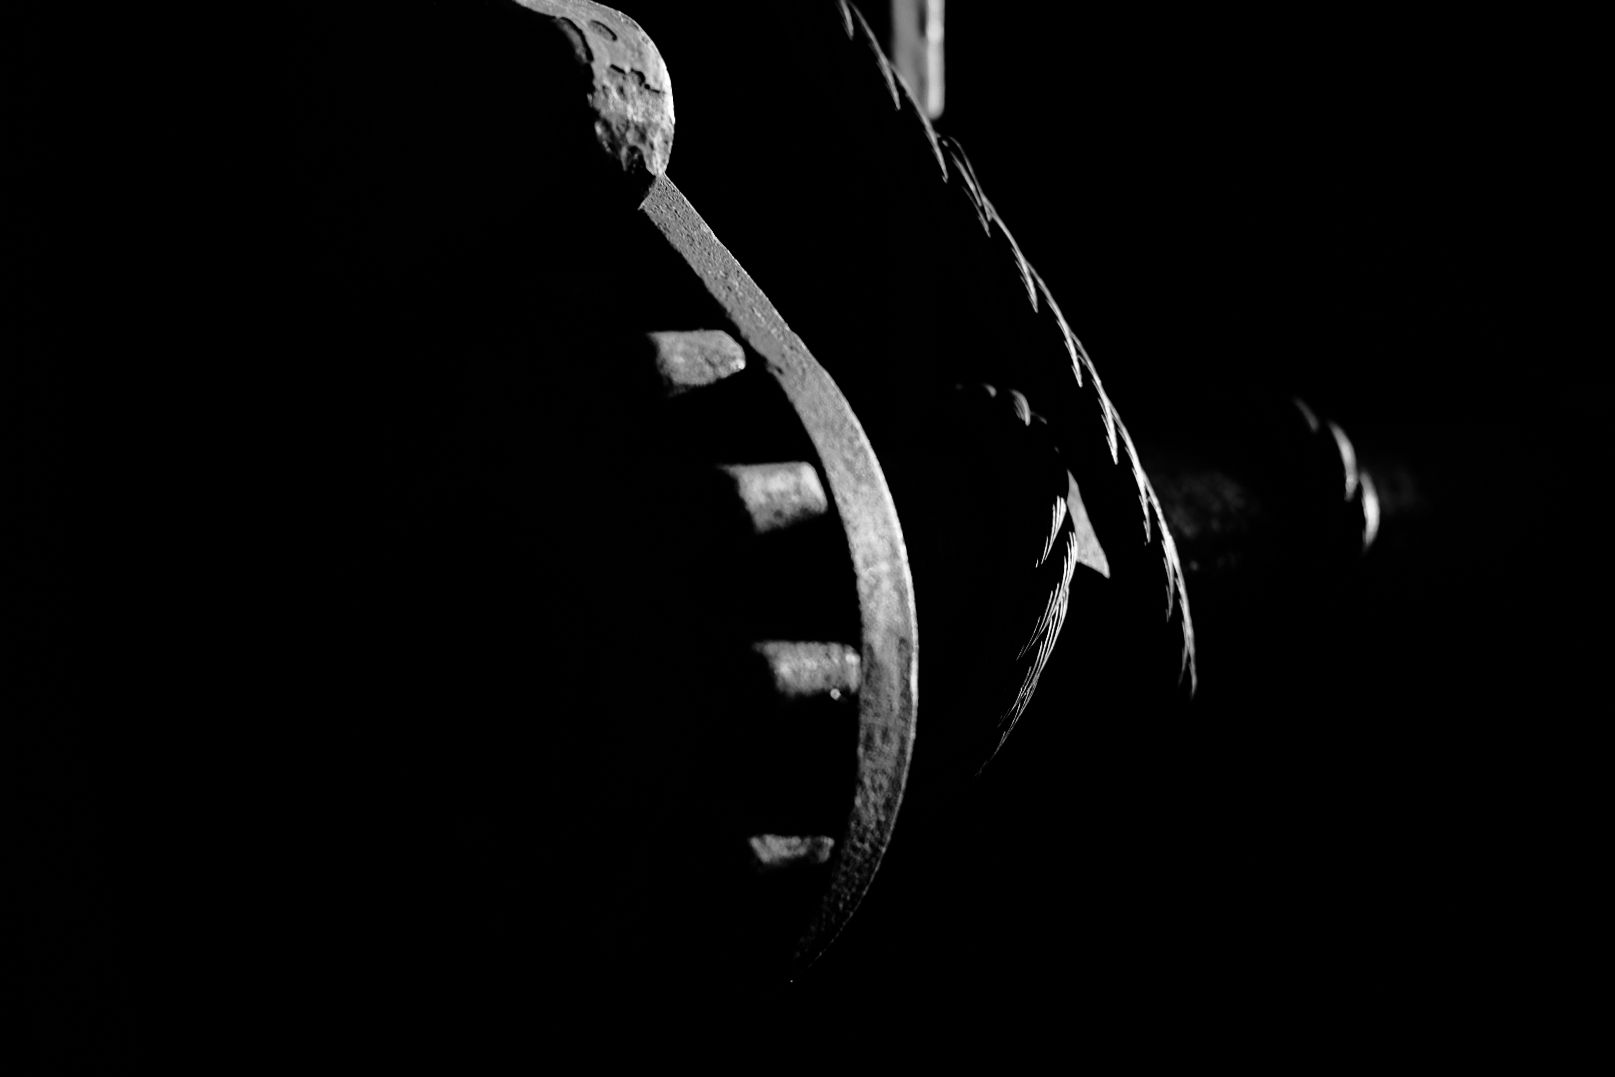 train, tension, black and white, high contrast, cable, spindle